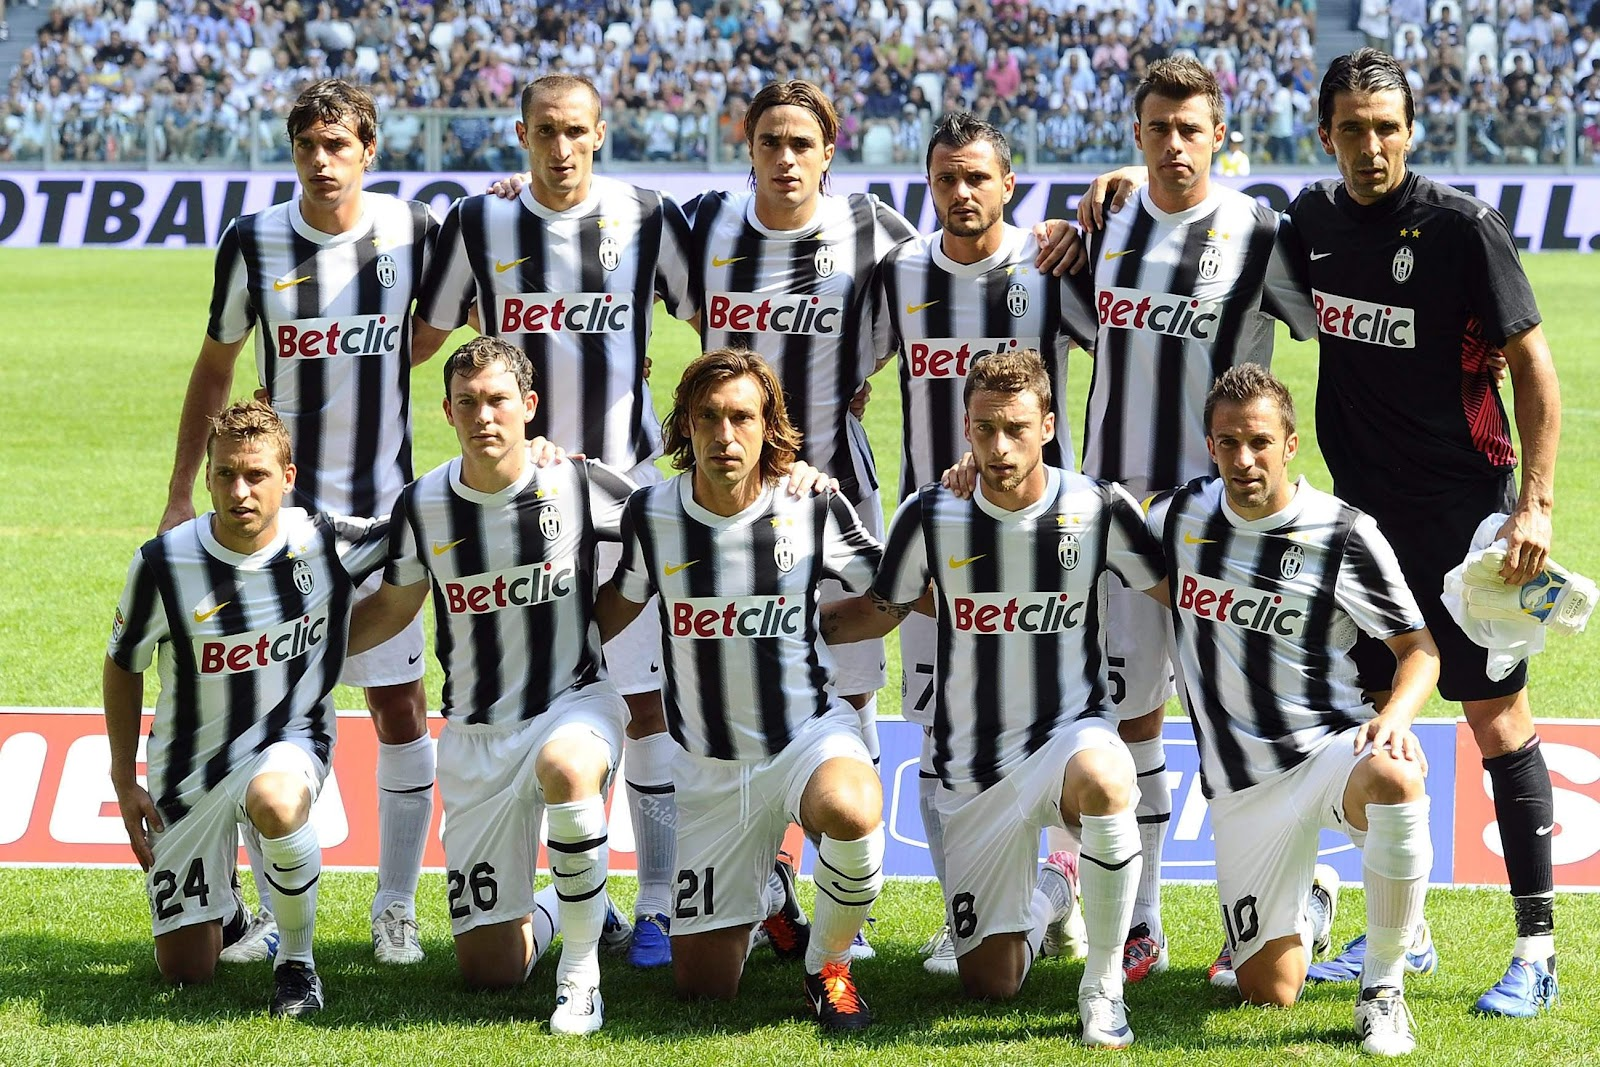 JUVENTUS TURIN, actu du club, stats - Juventus Football Club